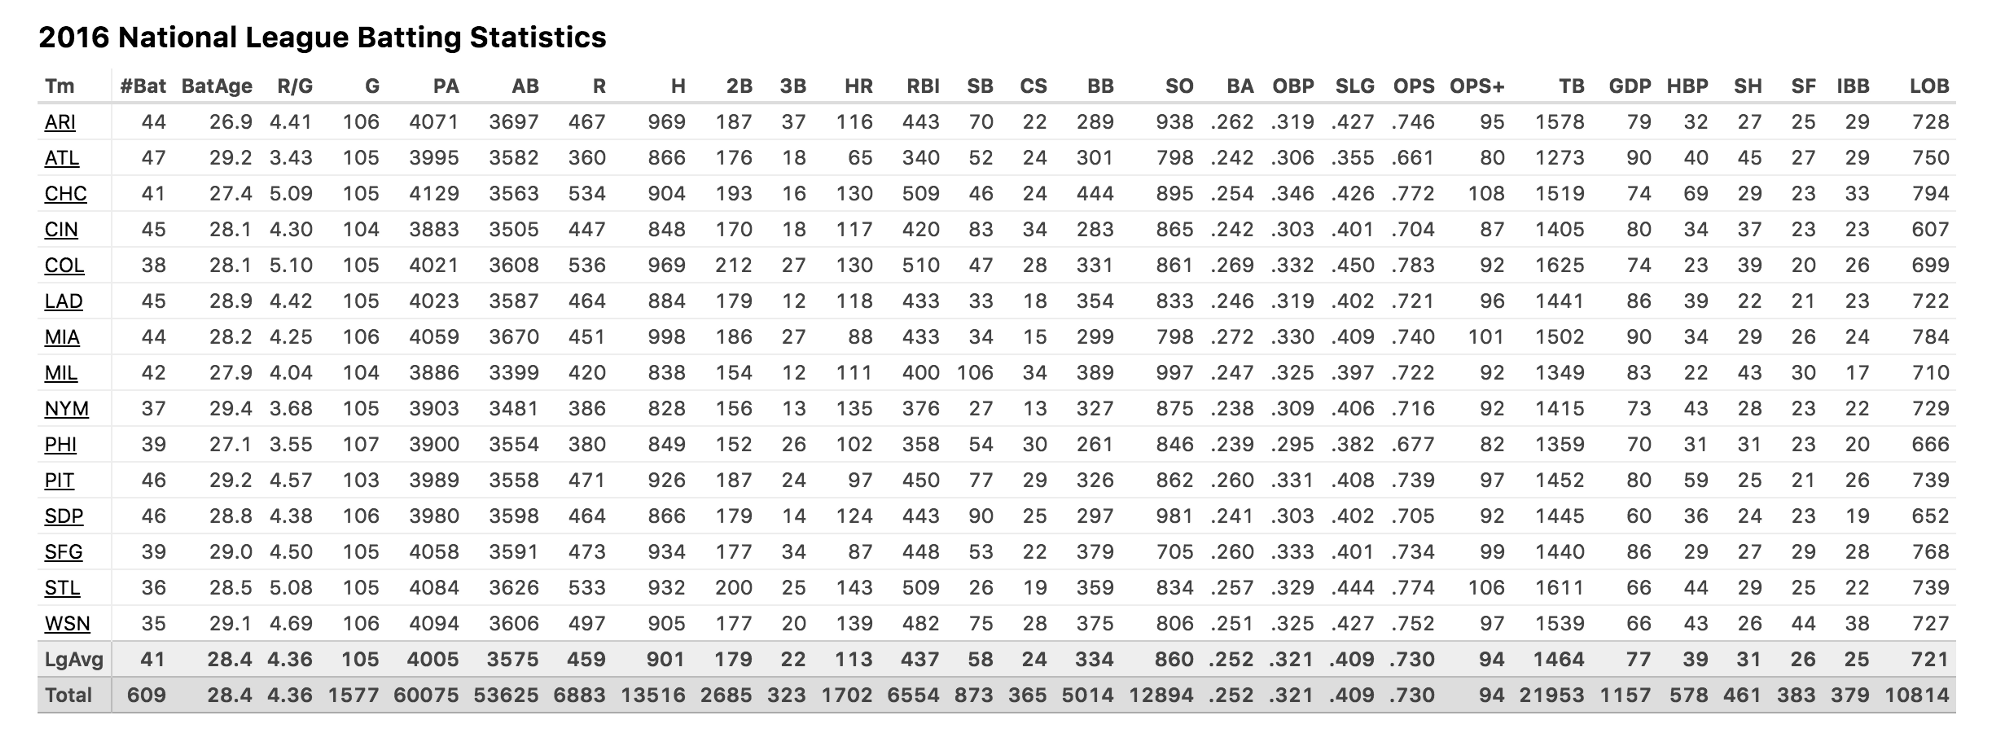 2016 National League Batting Statistics - BaseballReference